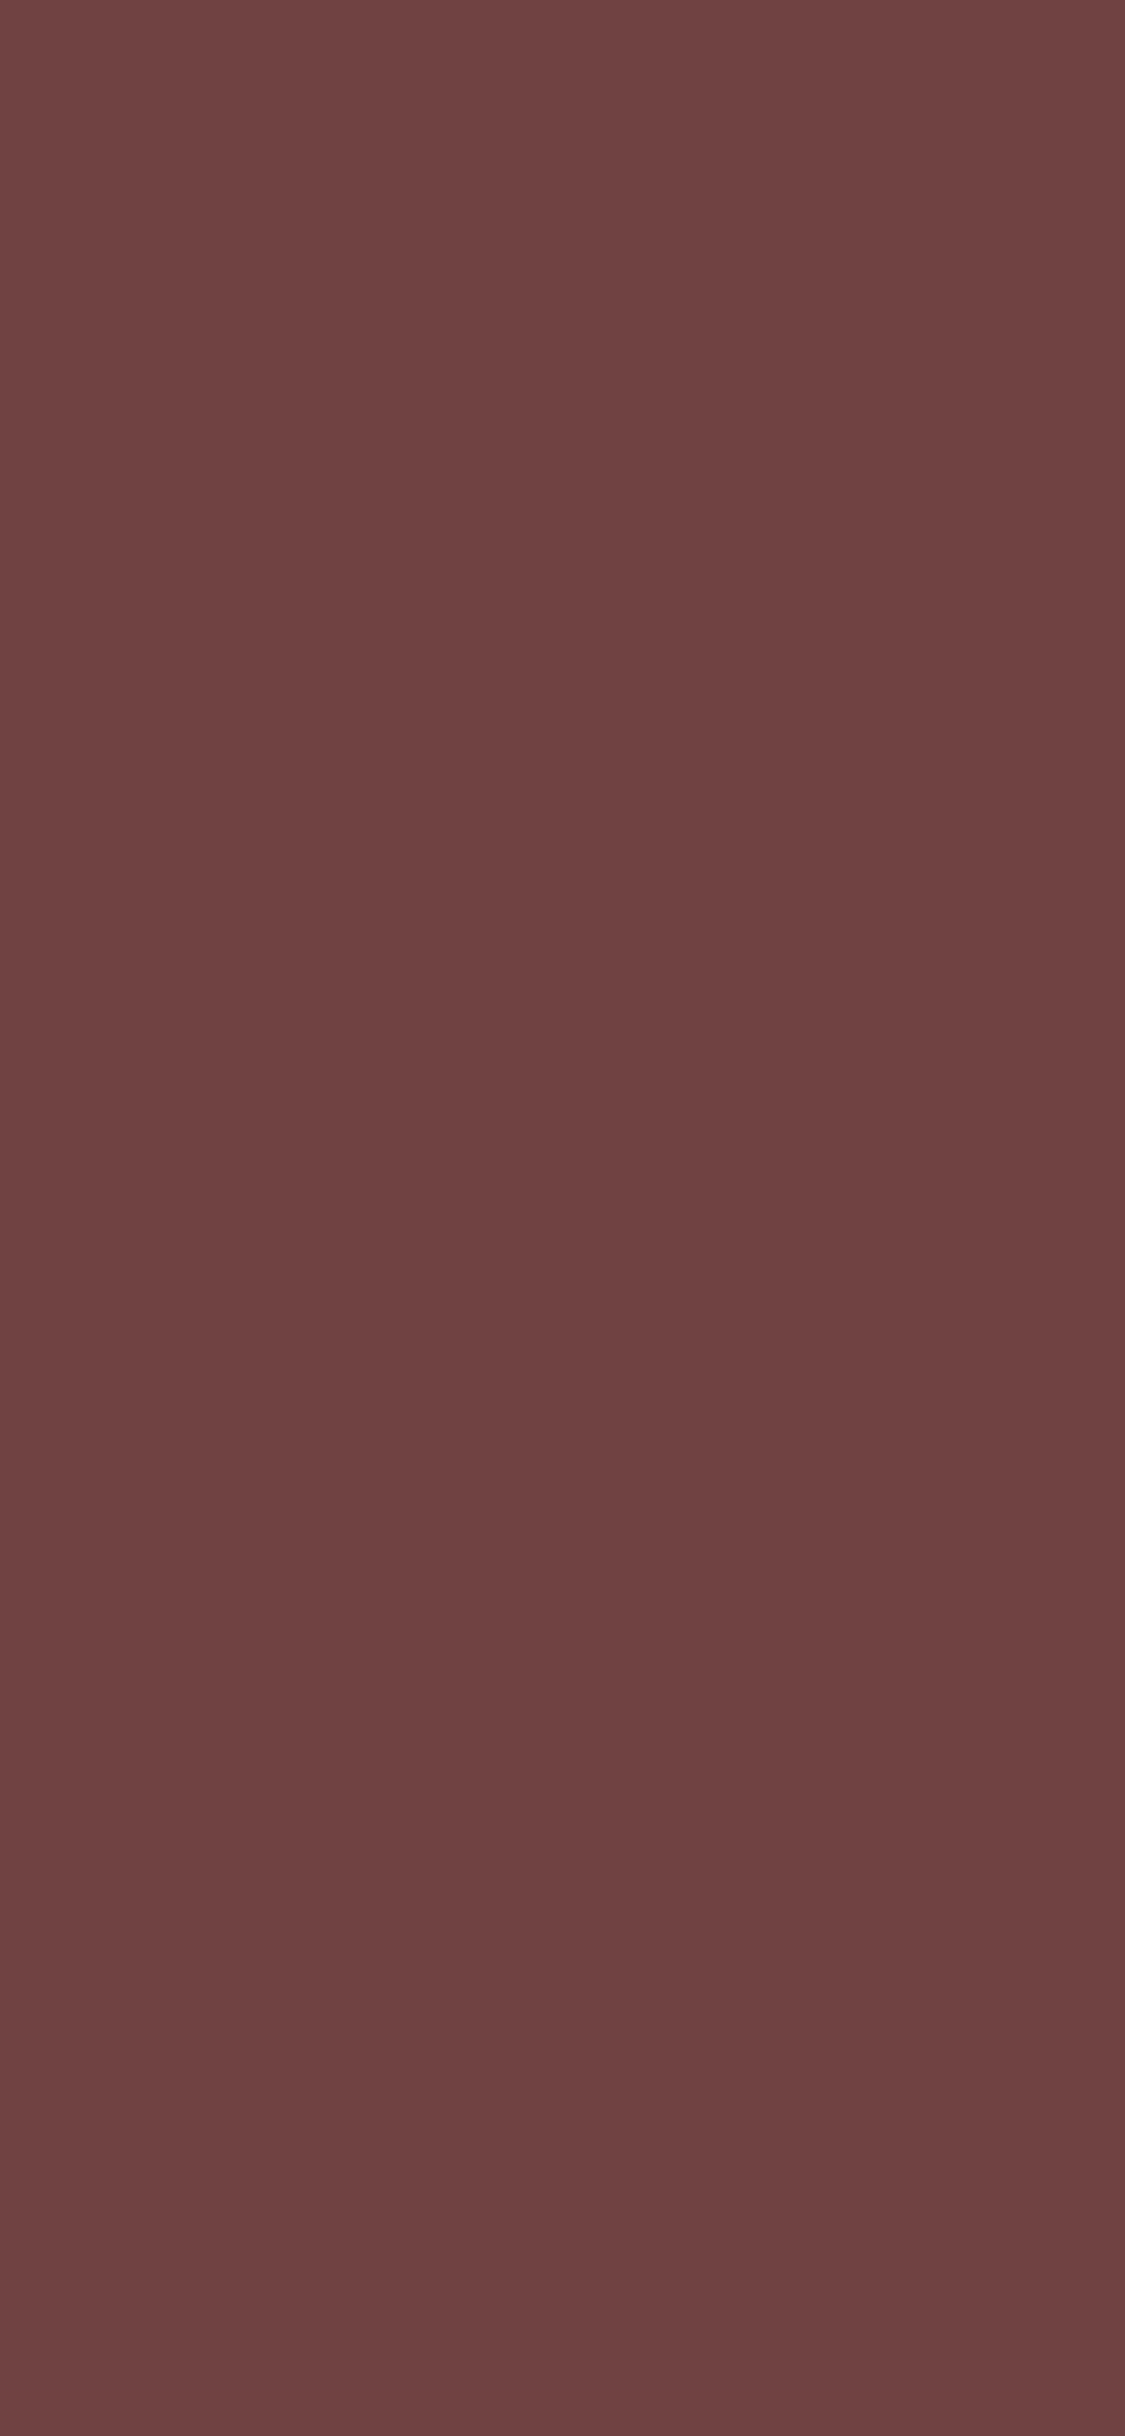 1125x2436 Deep Coffee Solid Color Background